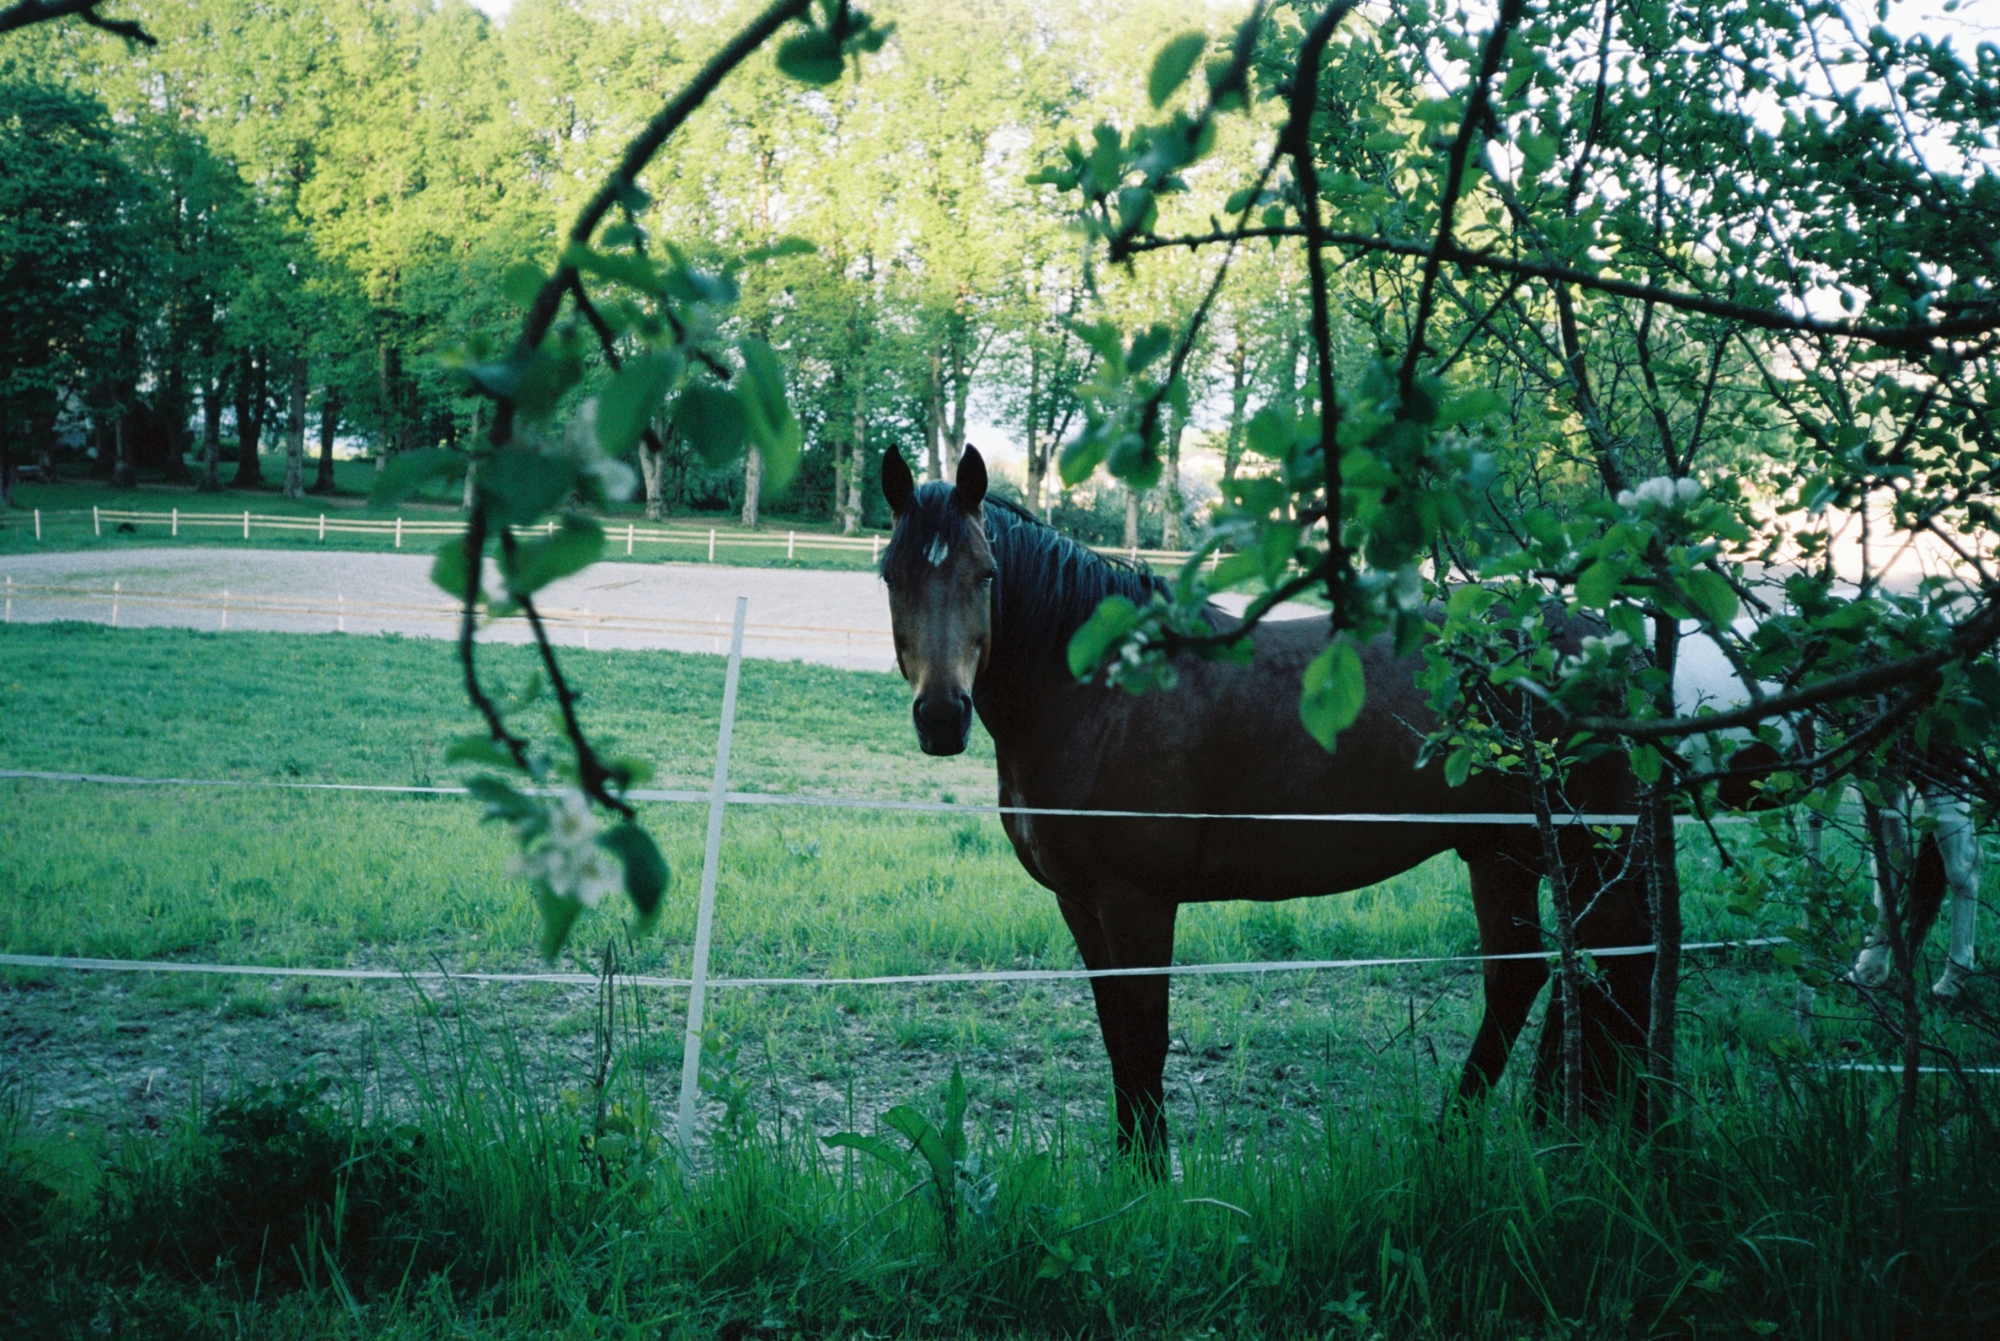 A horse standing in a field, close to the photographer, but behind a fence.